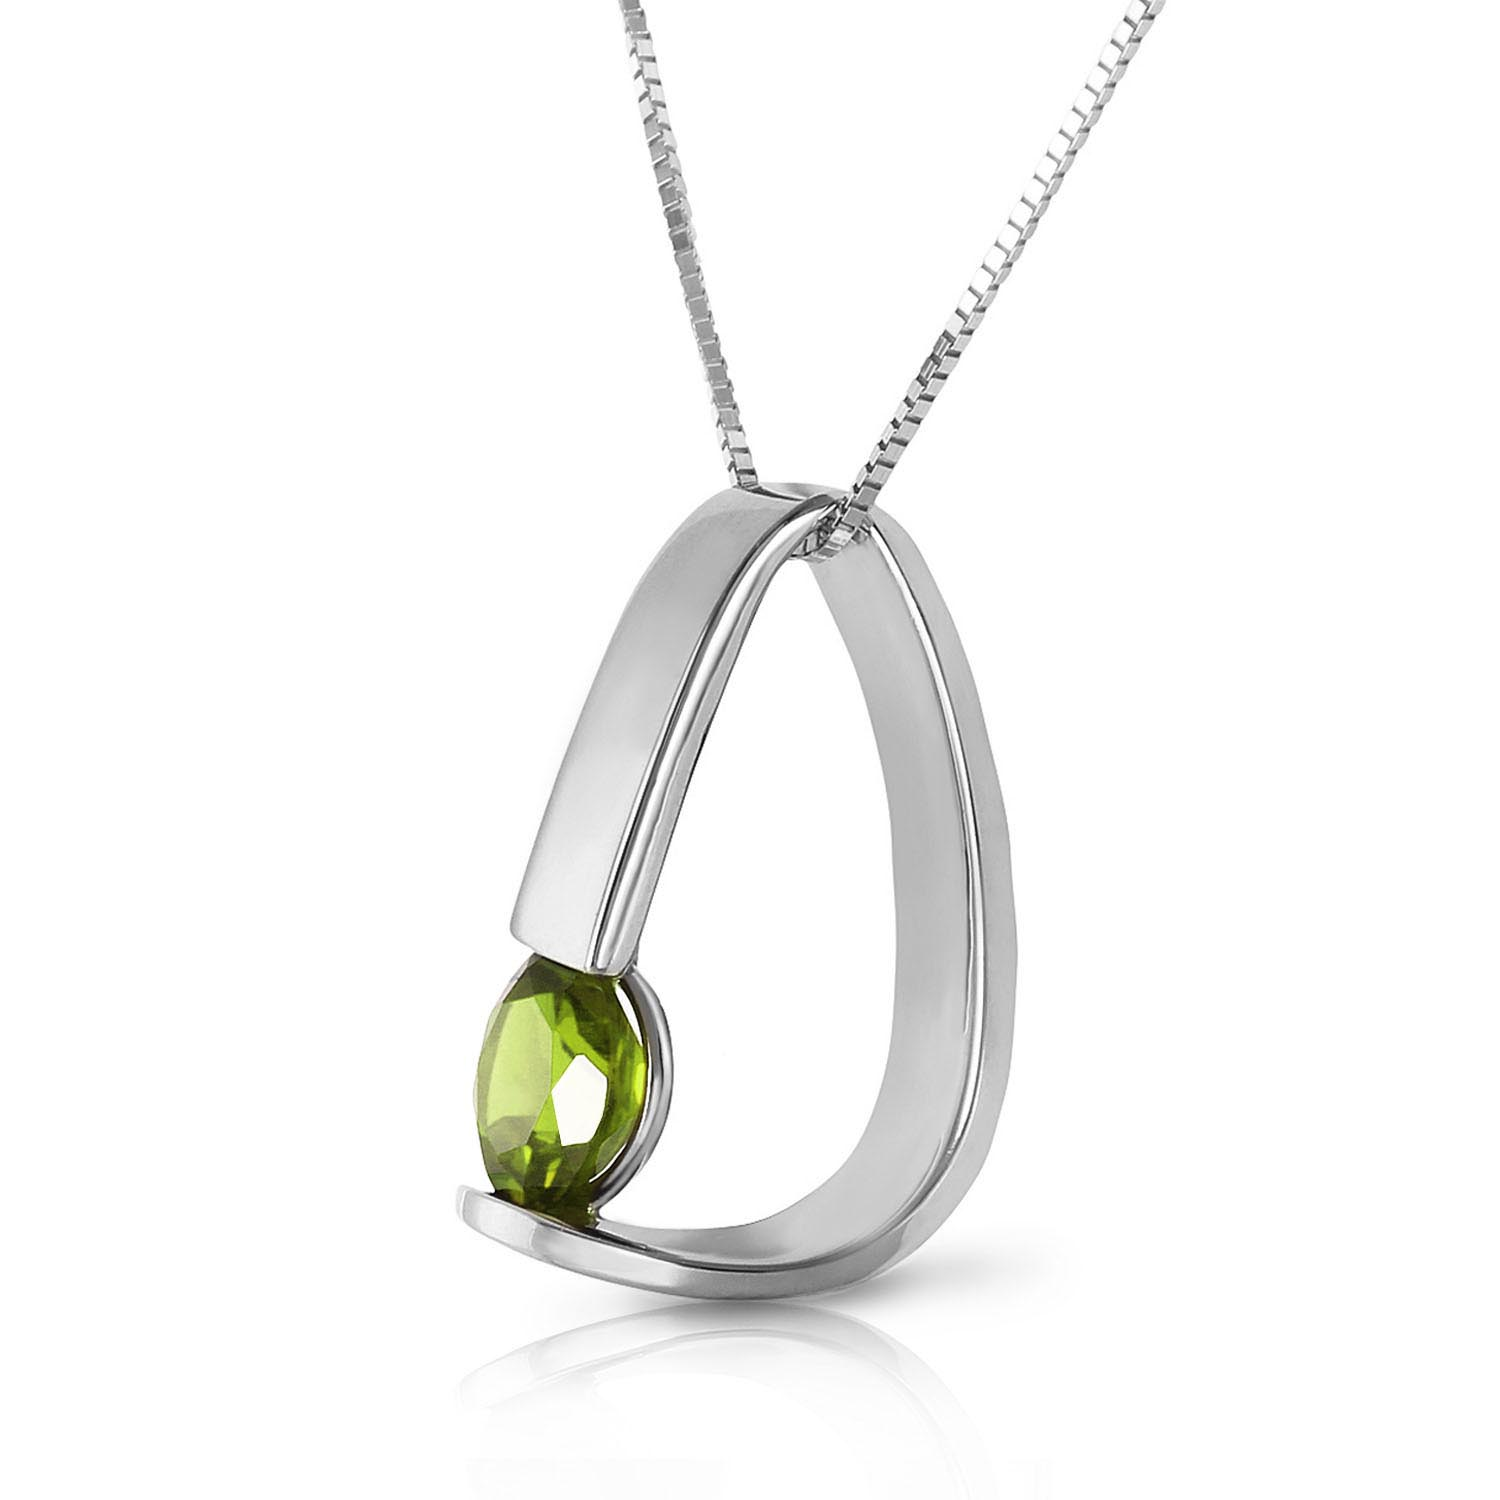 Peridot Arc Pendant Necklace 1 ct in 9ct White Gold